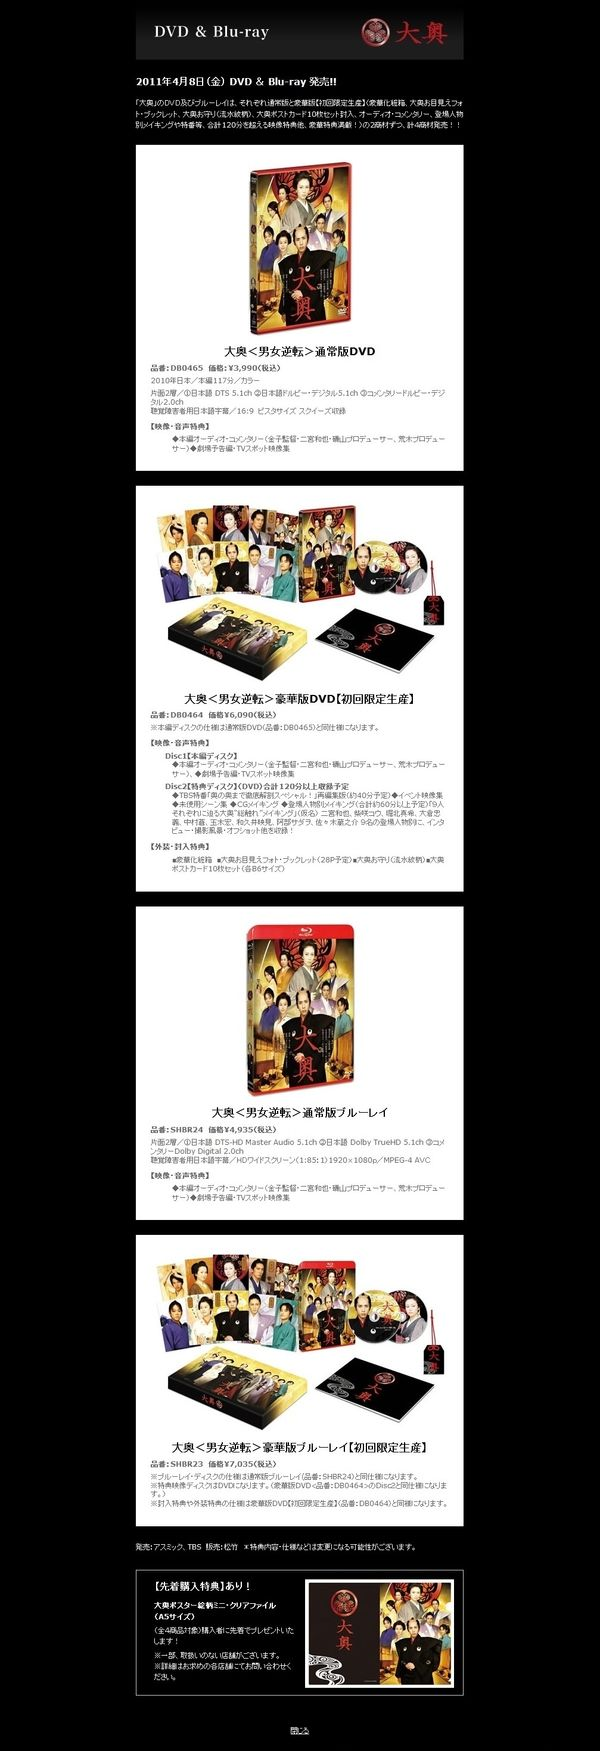 FILM OHOKU DVD & BLU-RAY 08.04.2011